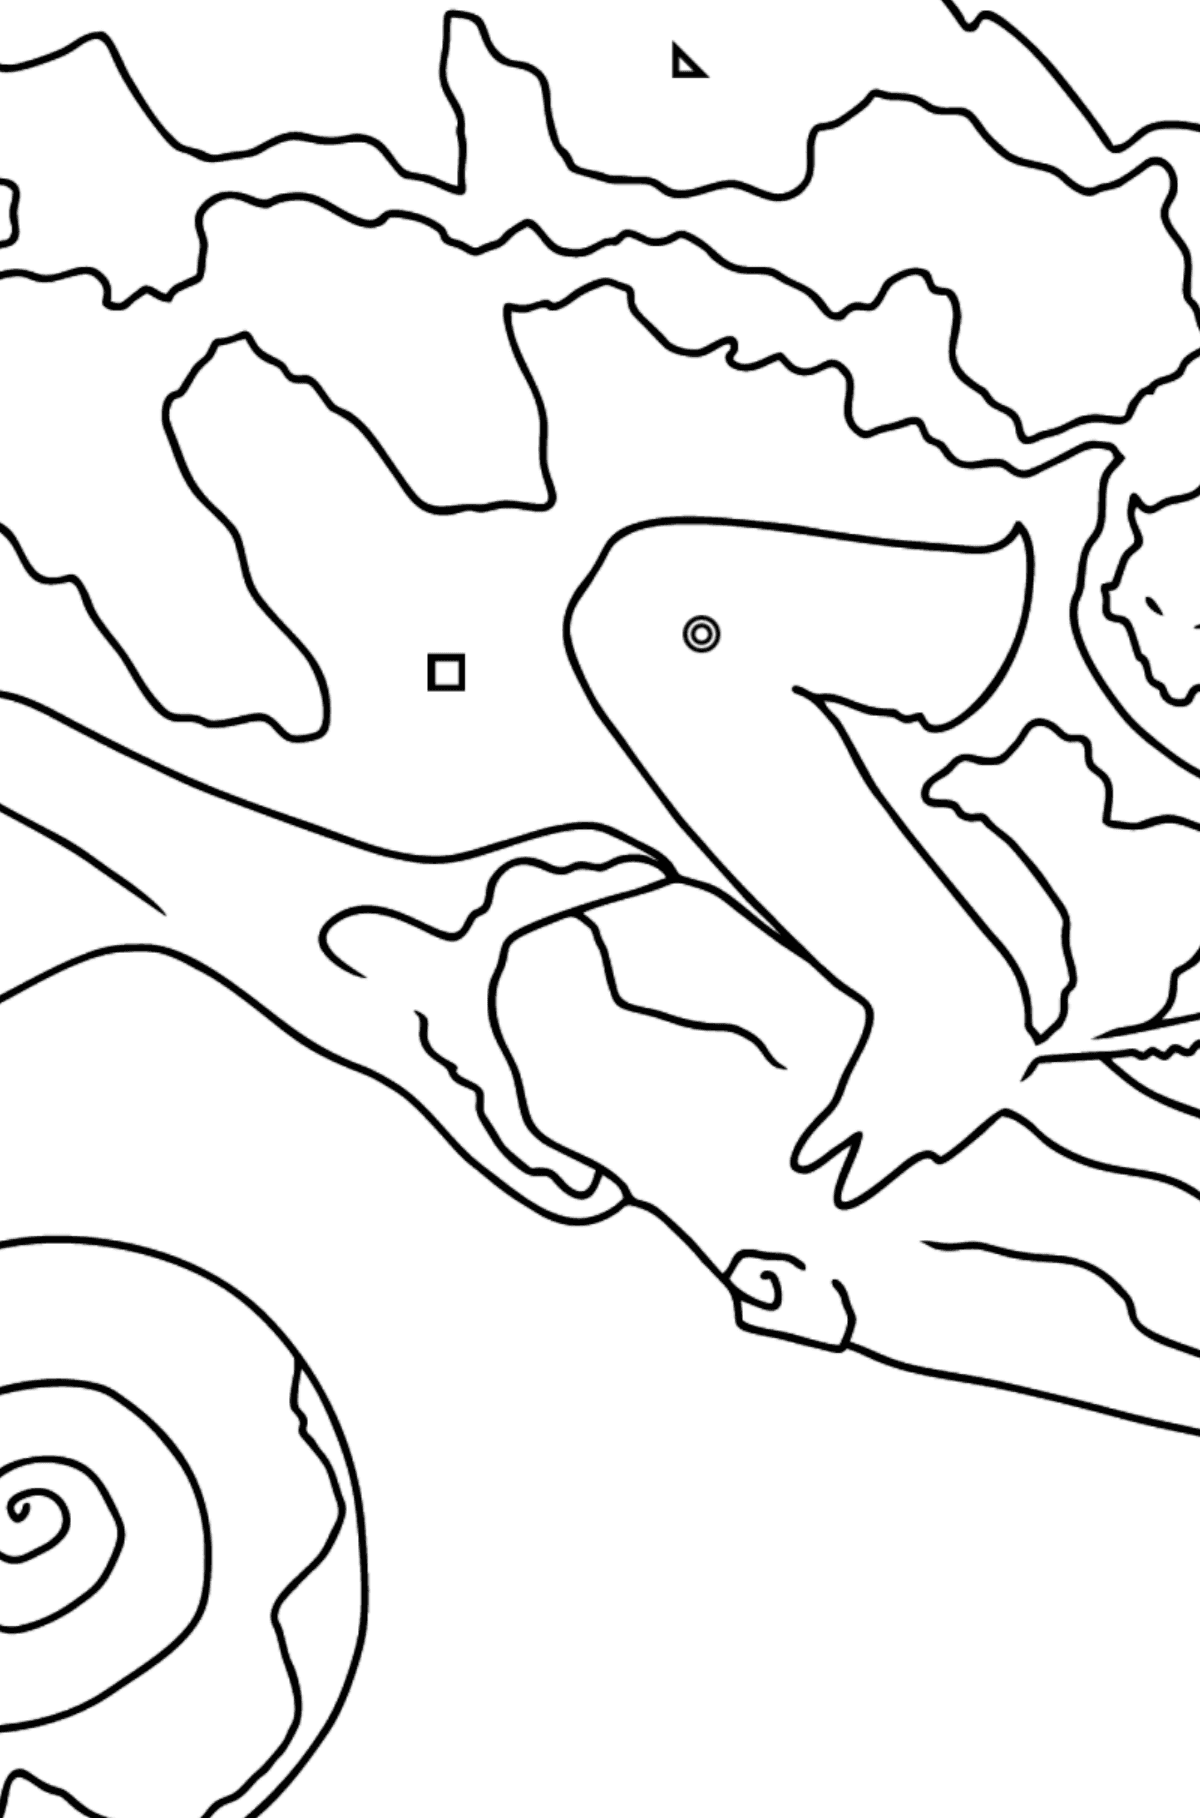 Coloring Page - A Chameleon is Having a Rest - Coloring by Geometric Shapes for Kids